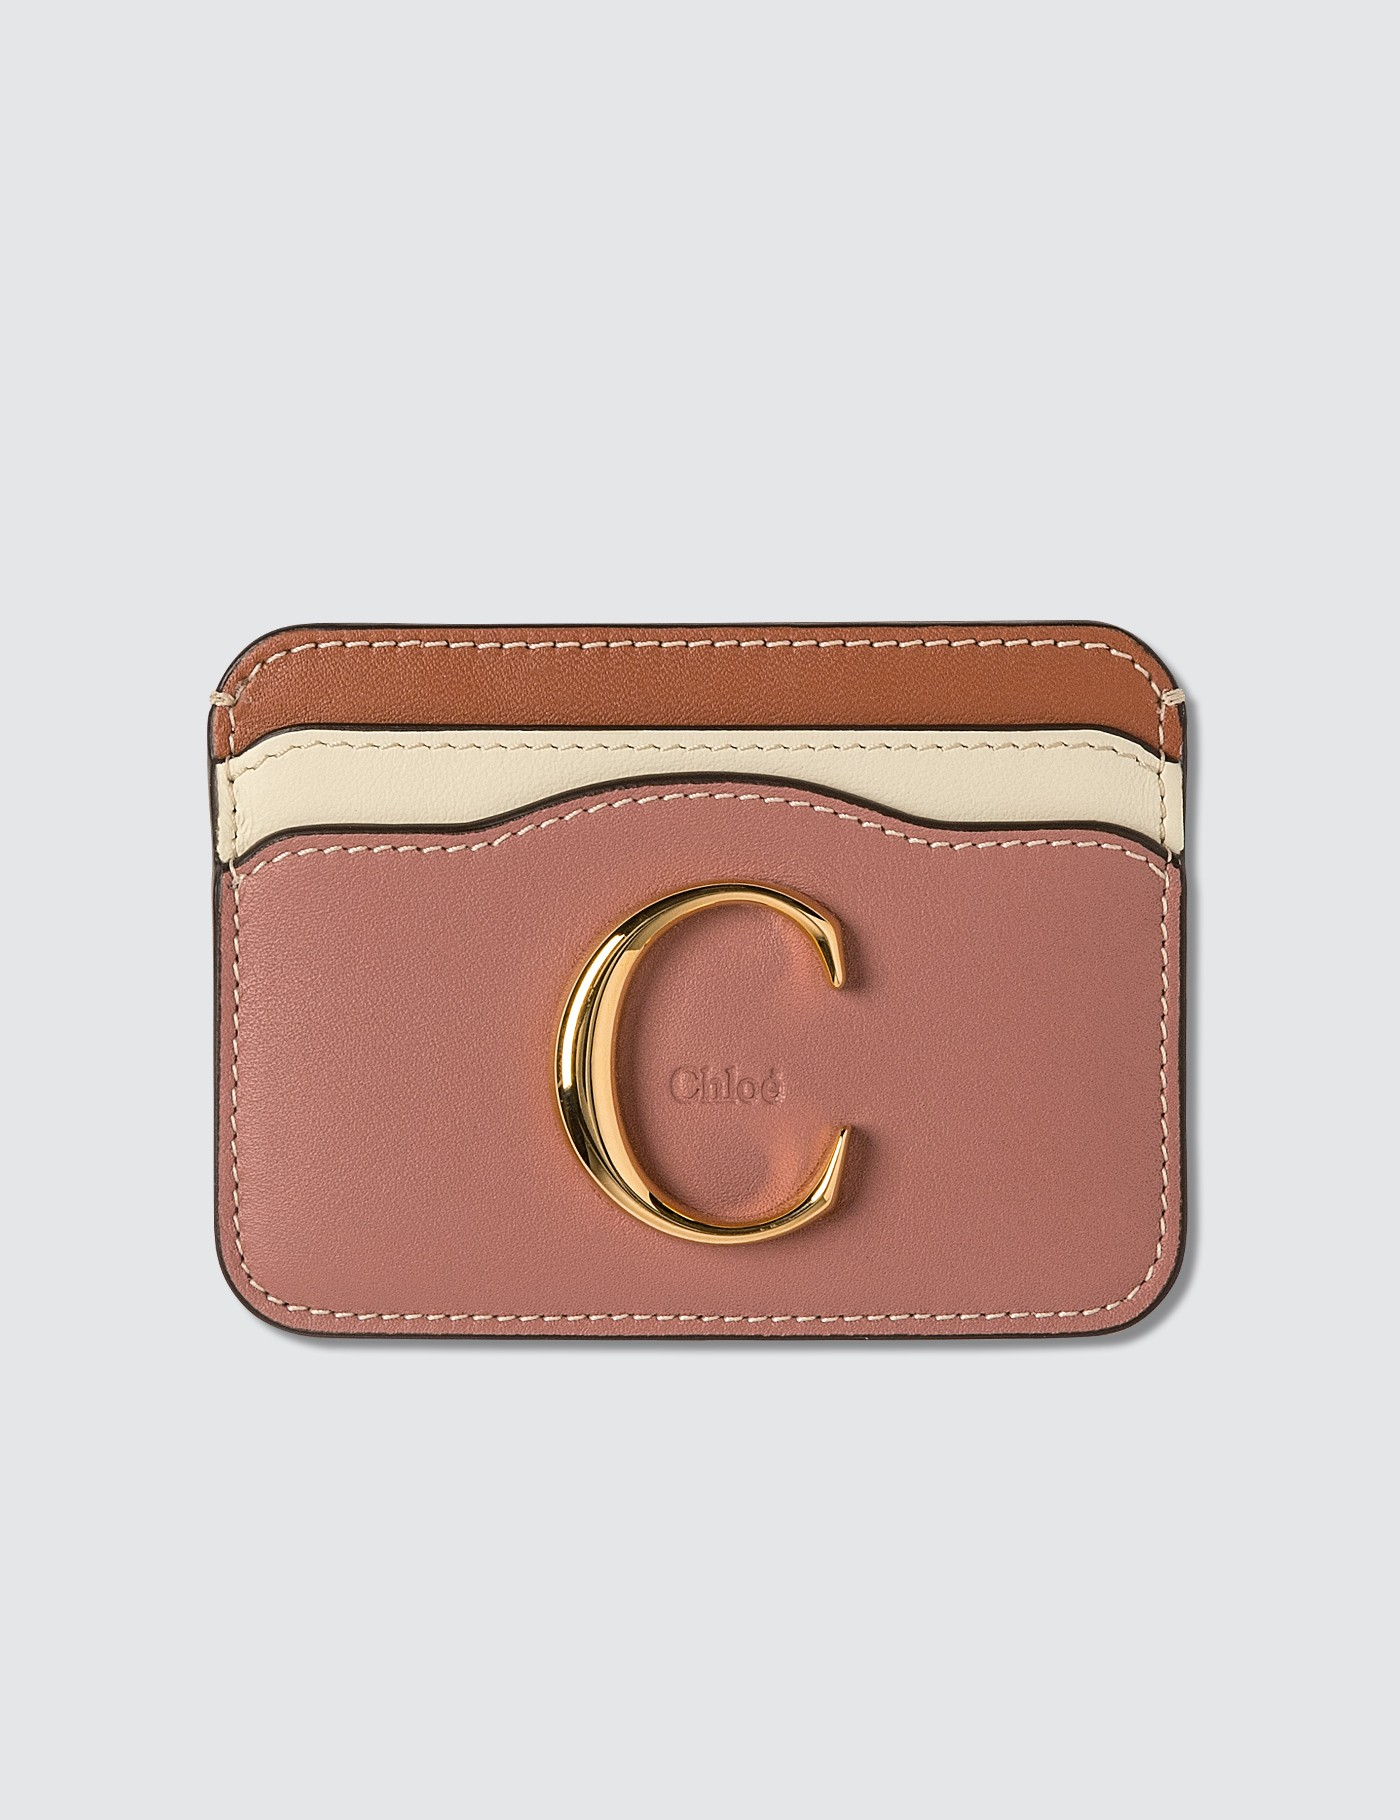 Chlou00e9 C Card Holder